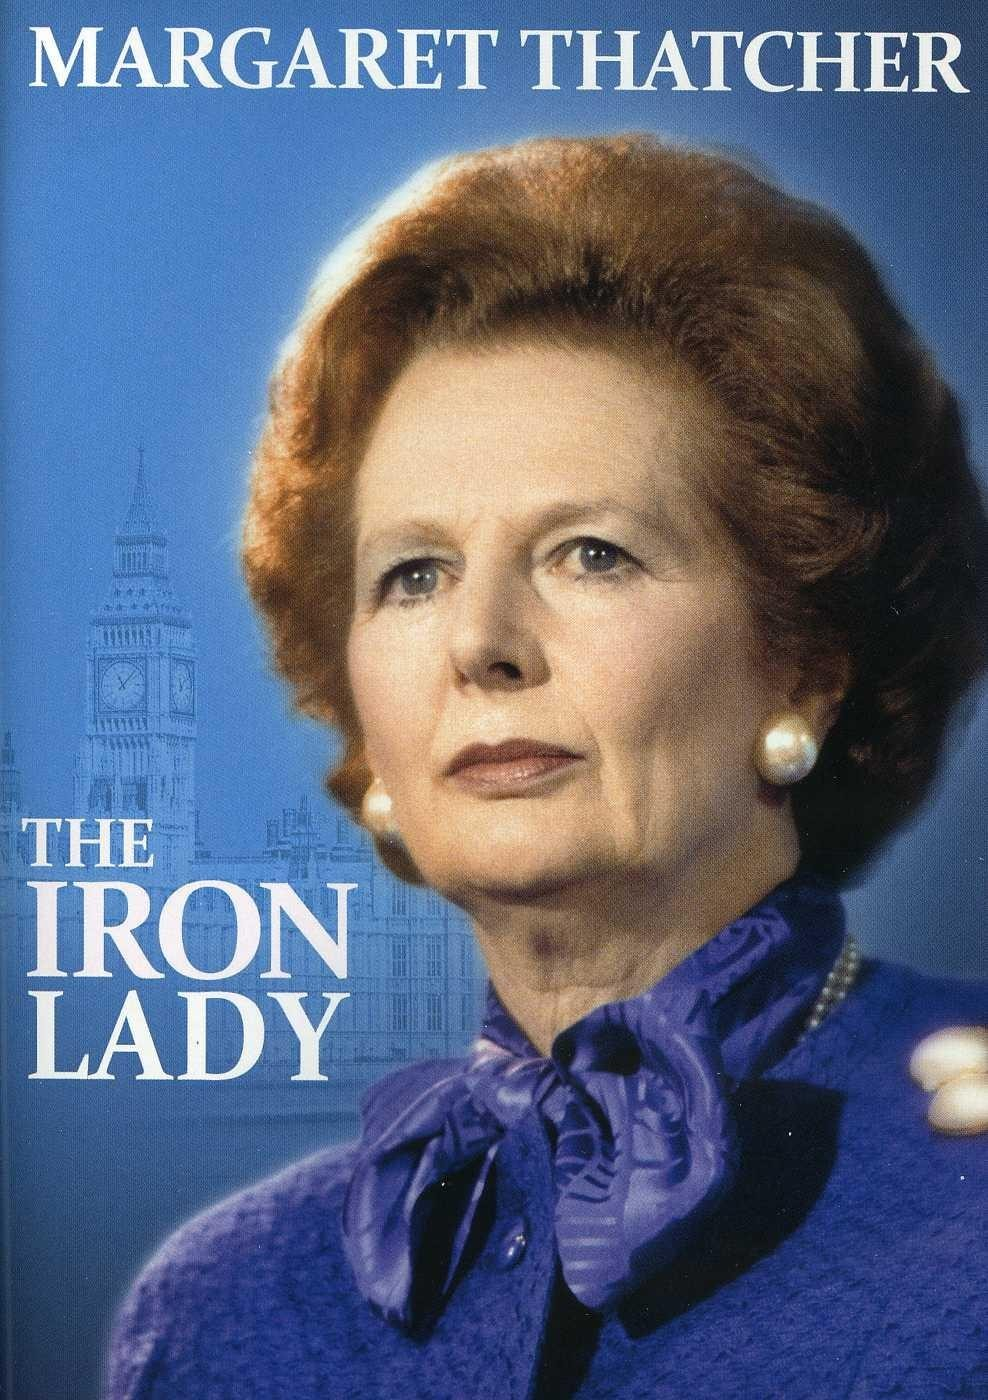 the changes that margaret thatcher brought on great england Margaret thatcher was a woman of staunch values and brought about radical changes even though her ideas were under siege margaret thatcher, nee margaret hilda roberts in parts of western and southern england and ireland, swear by thatcher's ideologies top.